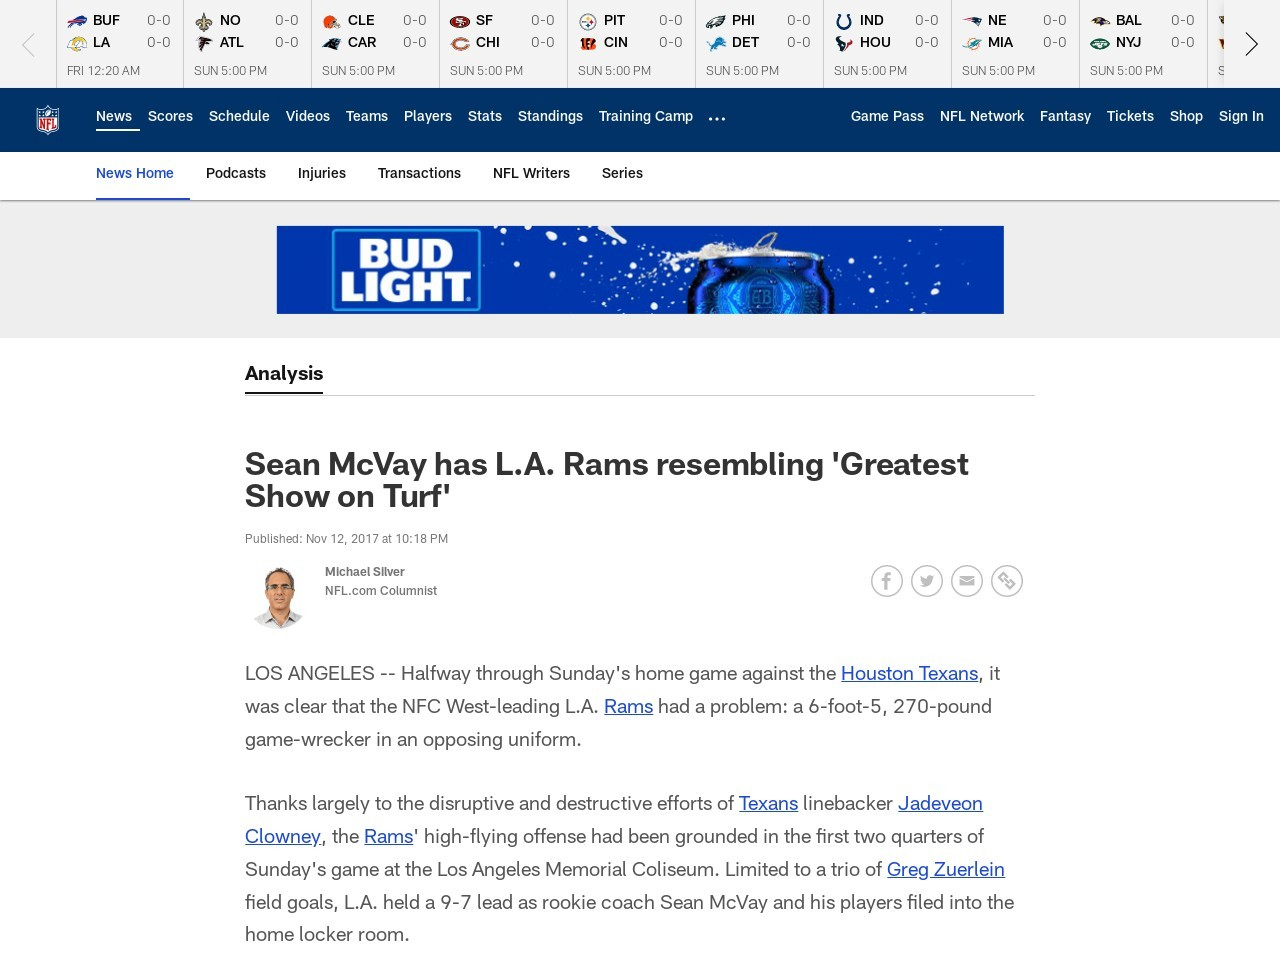 Sean McVay has L.A. Rams resembling 'Greatest Show on Turf'